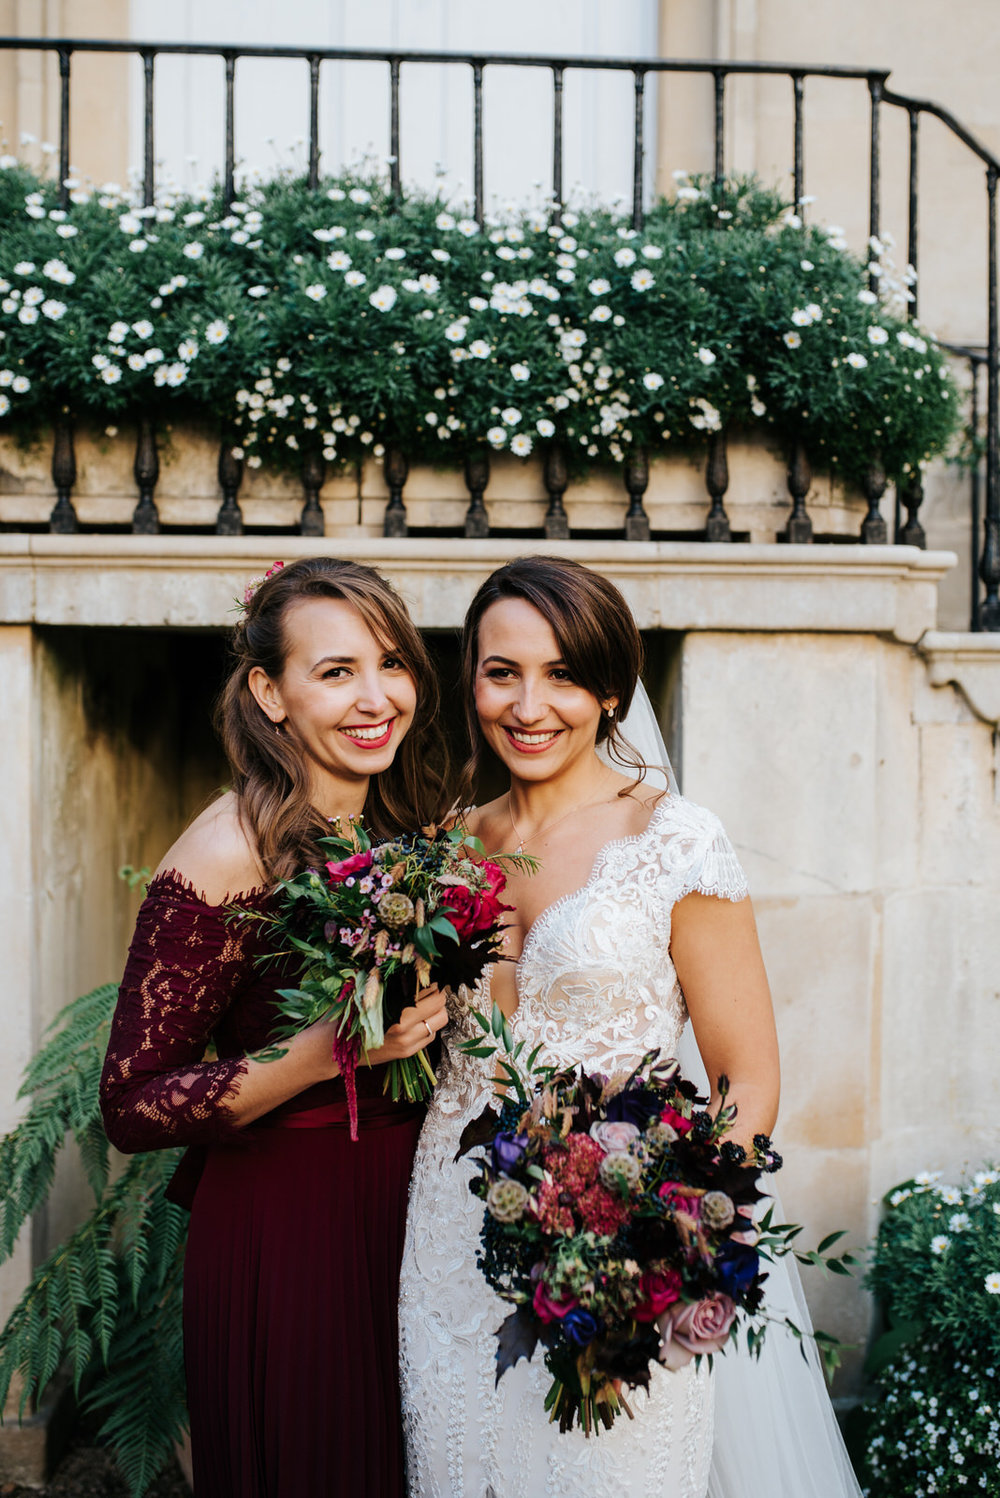 Posed photo of bride and her sister looking very natural